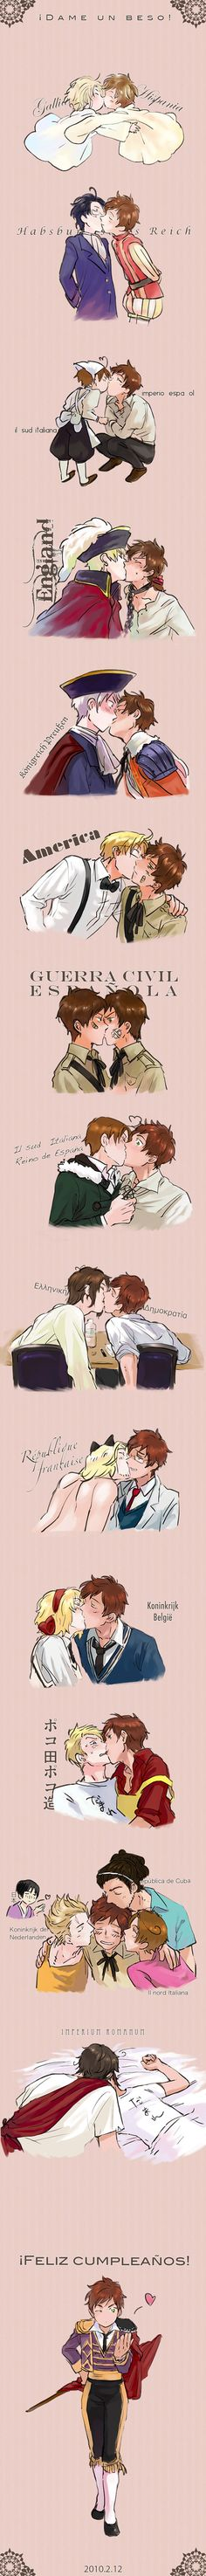 The Civil War one is hilarious XD Kissing himself haha <3 Hetalia. Kisses of Spain, to and from other countries~!